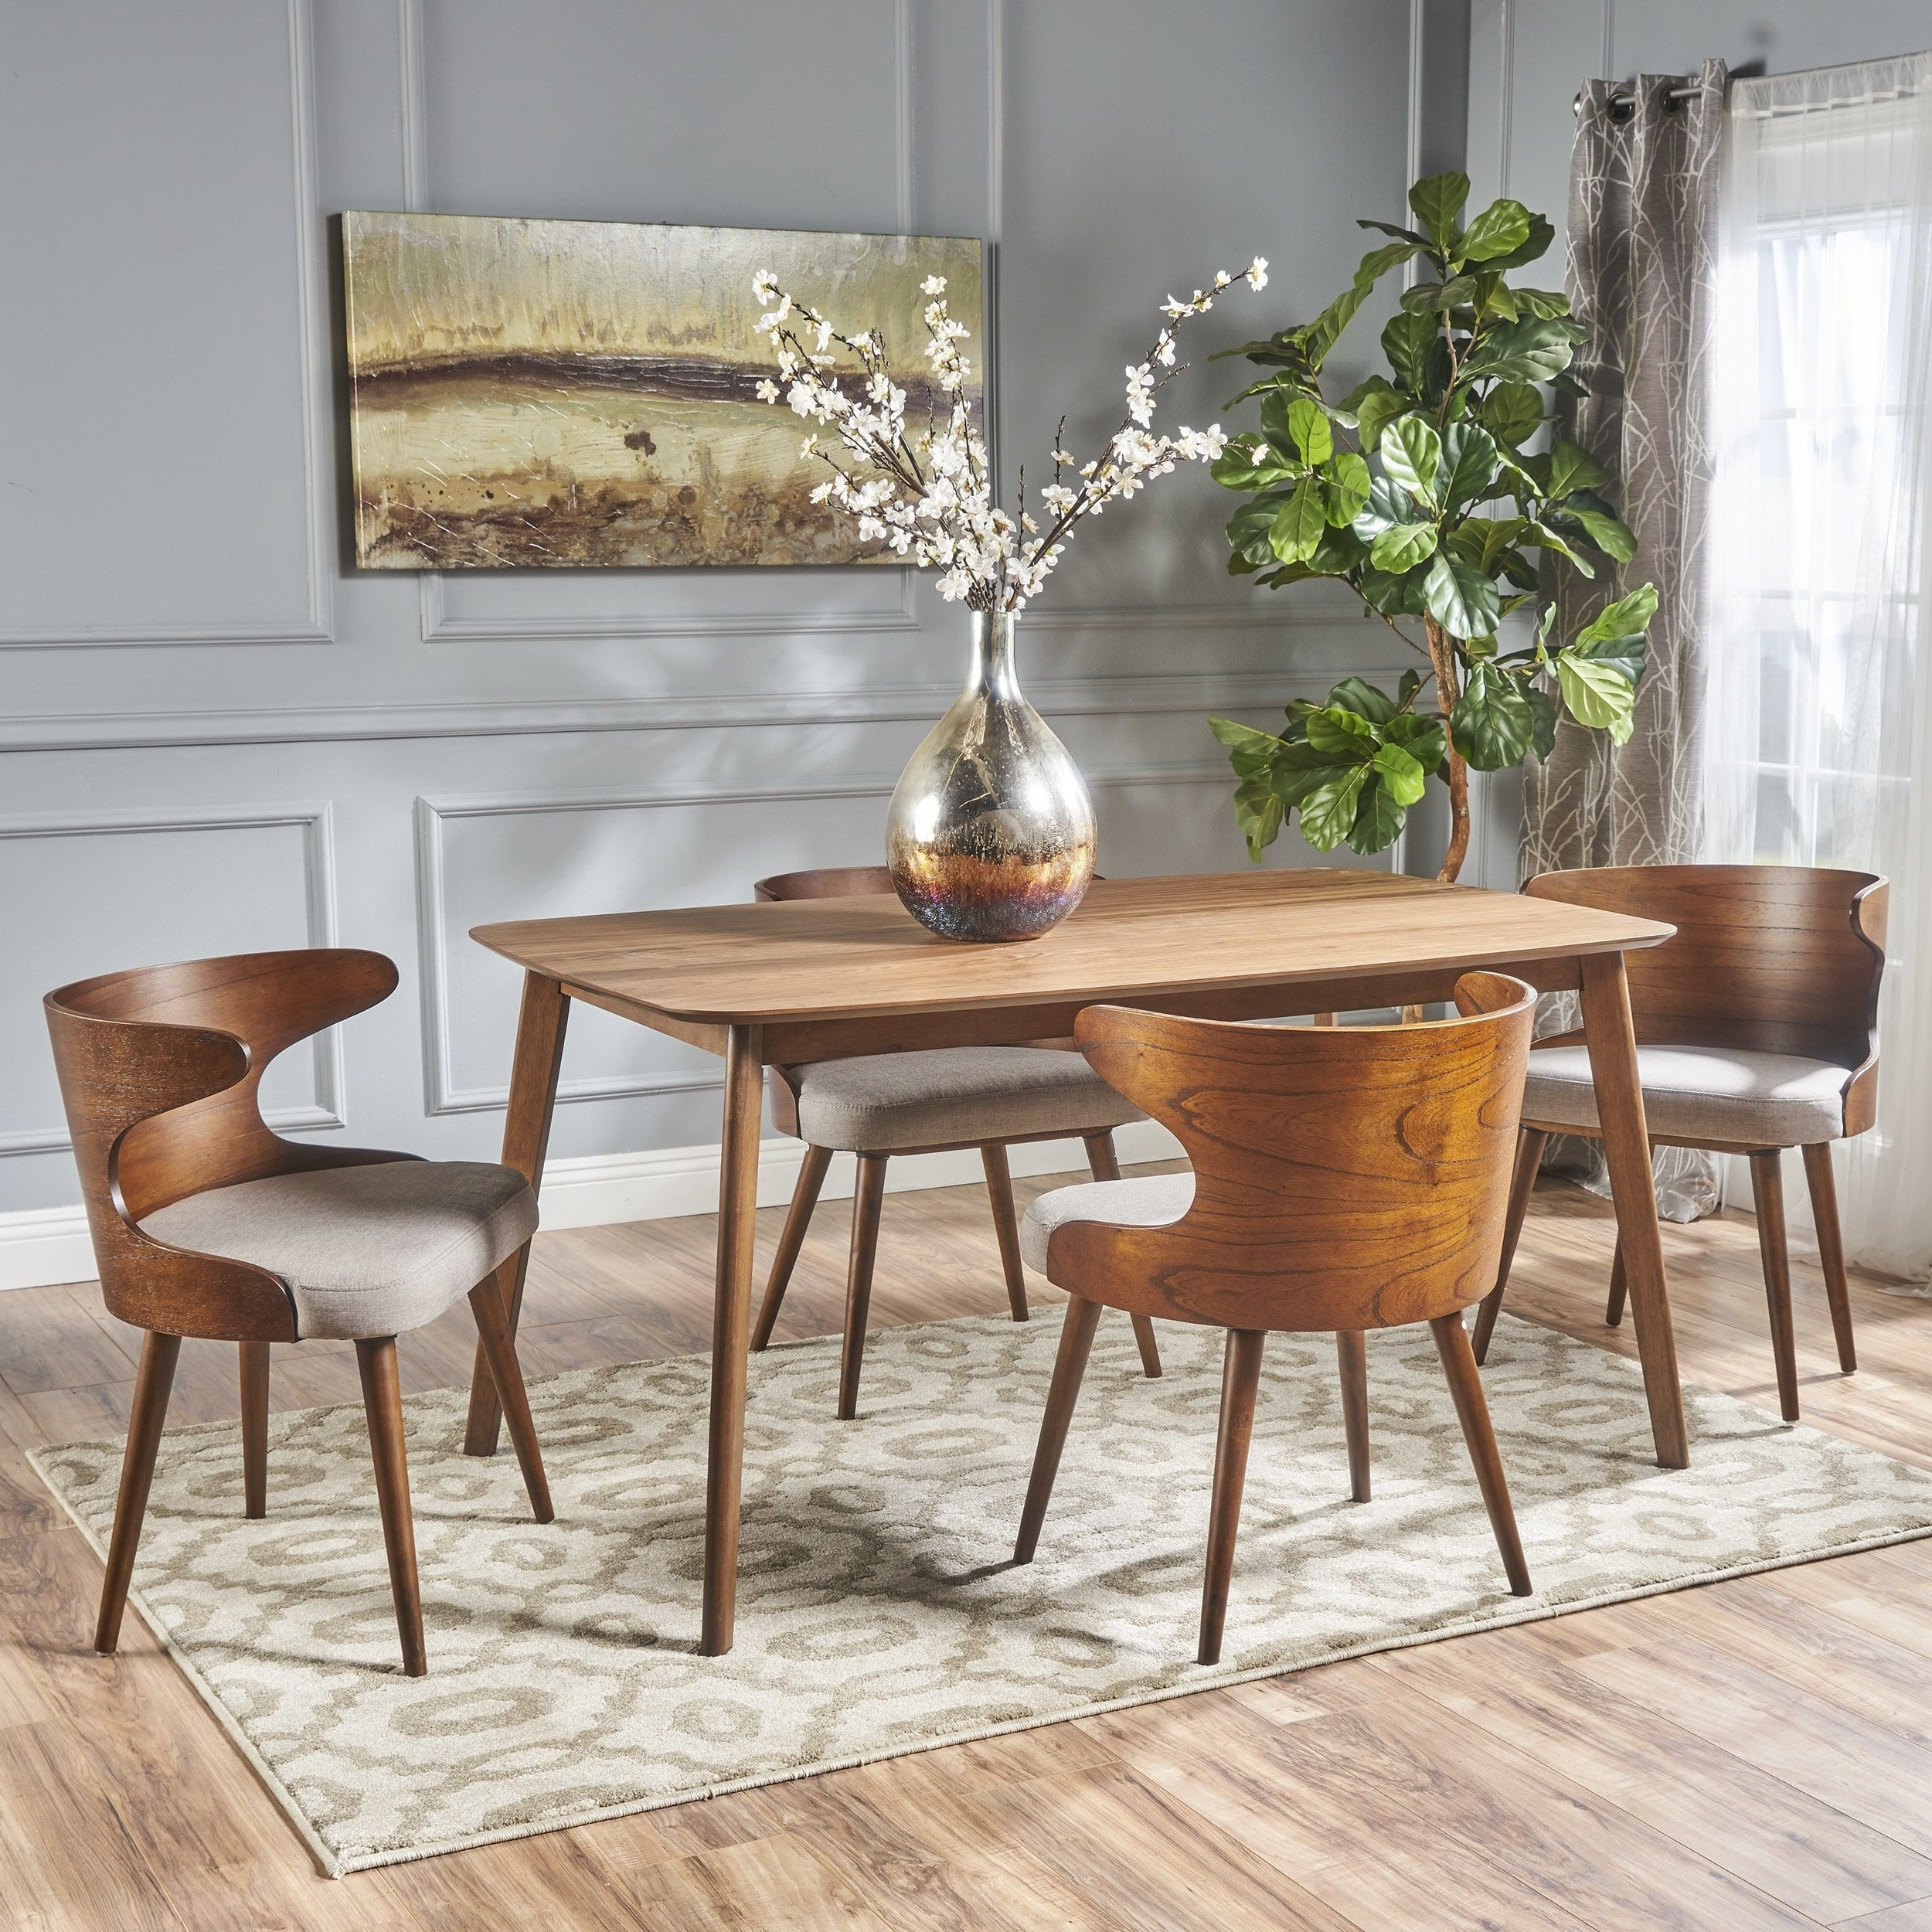 Famous Briella Mid Century 5 Piece Rectangular Wood Dining Set Regarding Palazzo 7 Piece Rectangle Dining Sets With Joss Side Chairs (View 5 of 25)